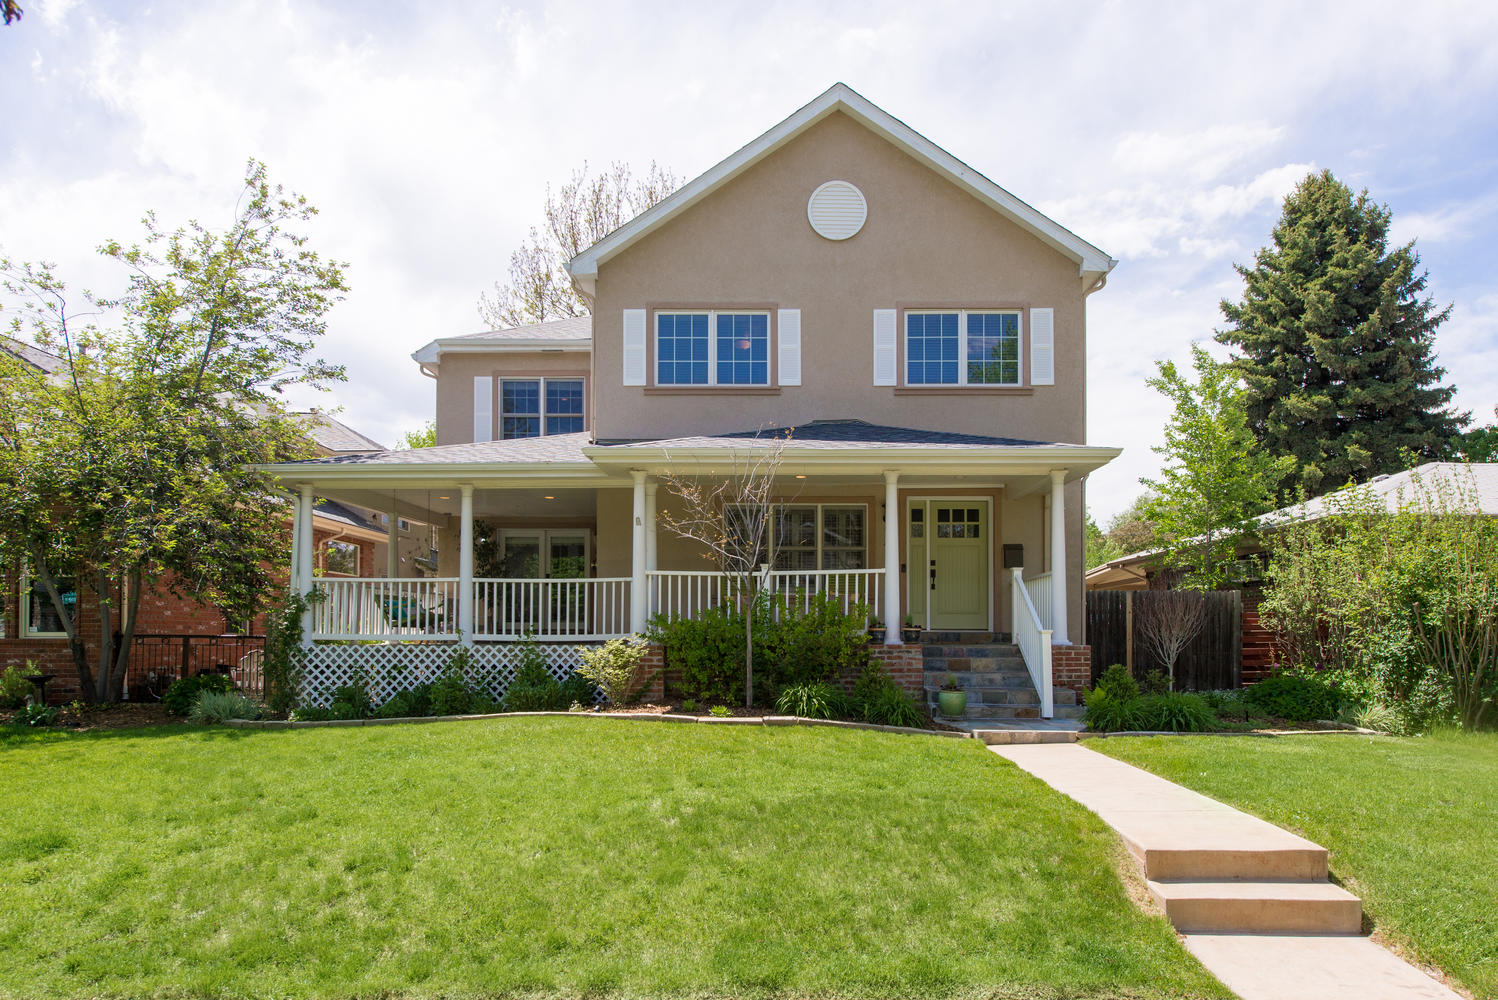 Single Family Home for Sale at Observatory Park Beauty! 2485 South Fillmore Street Denver, Colorado, 80210 United States